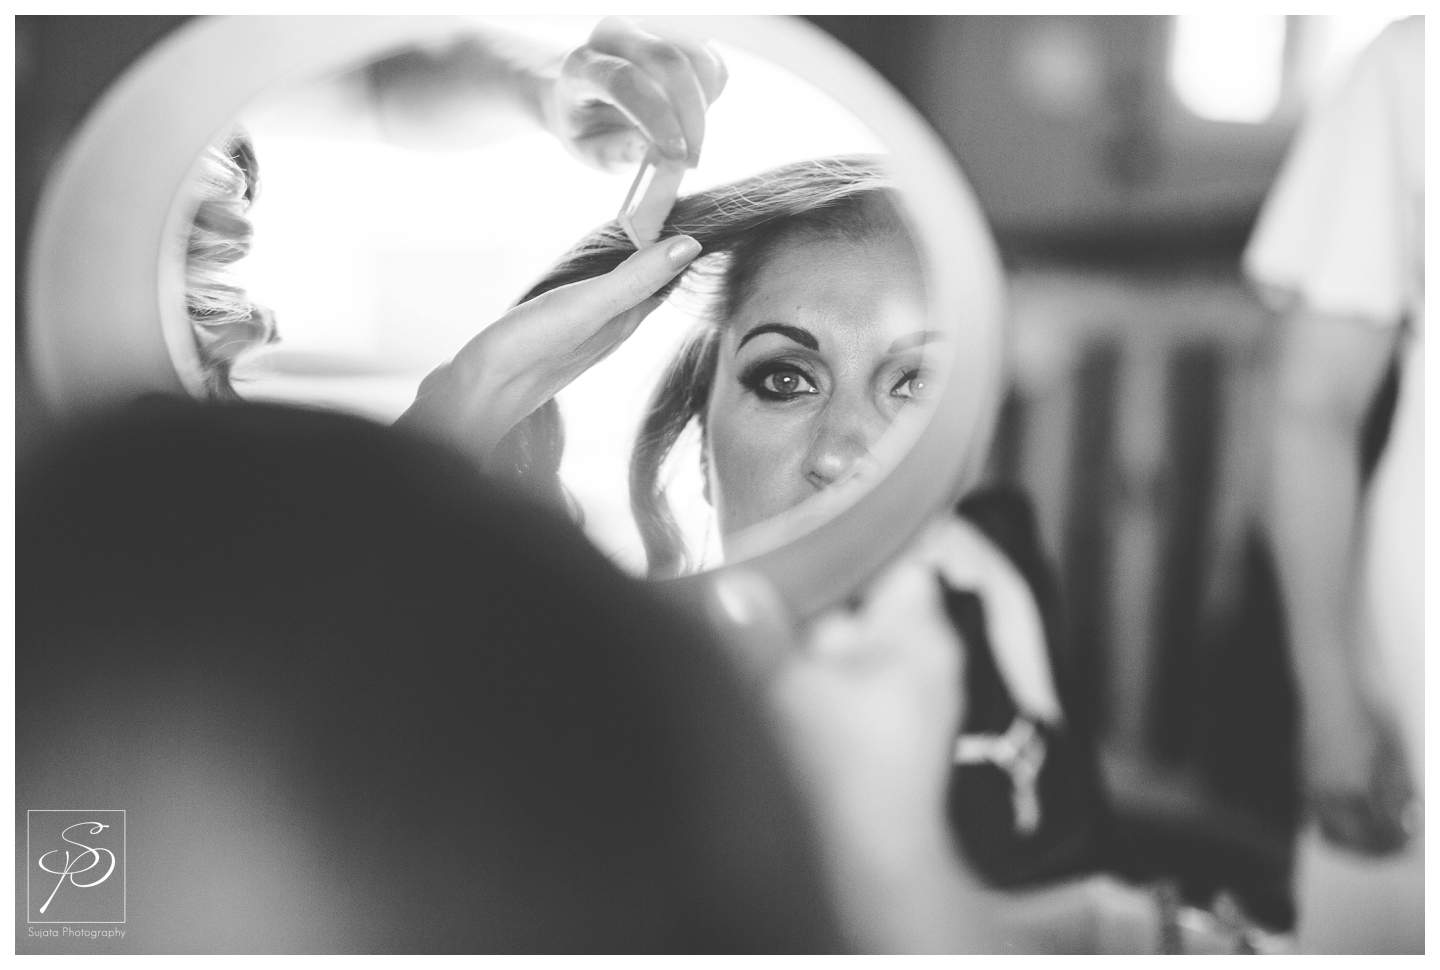 Black and white bridal portrait in a mirror